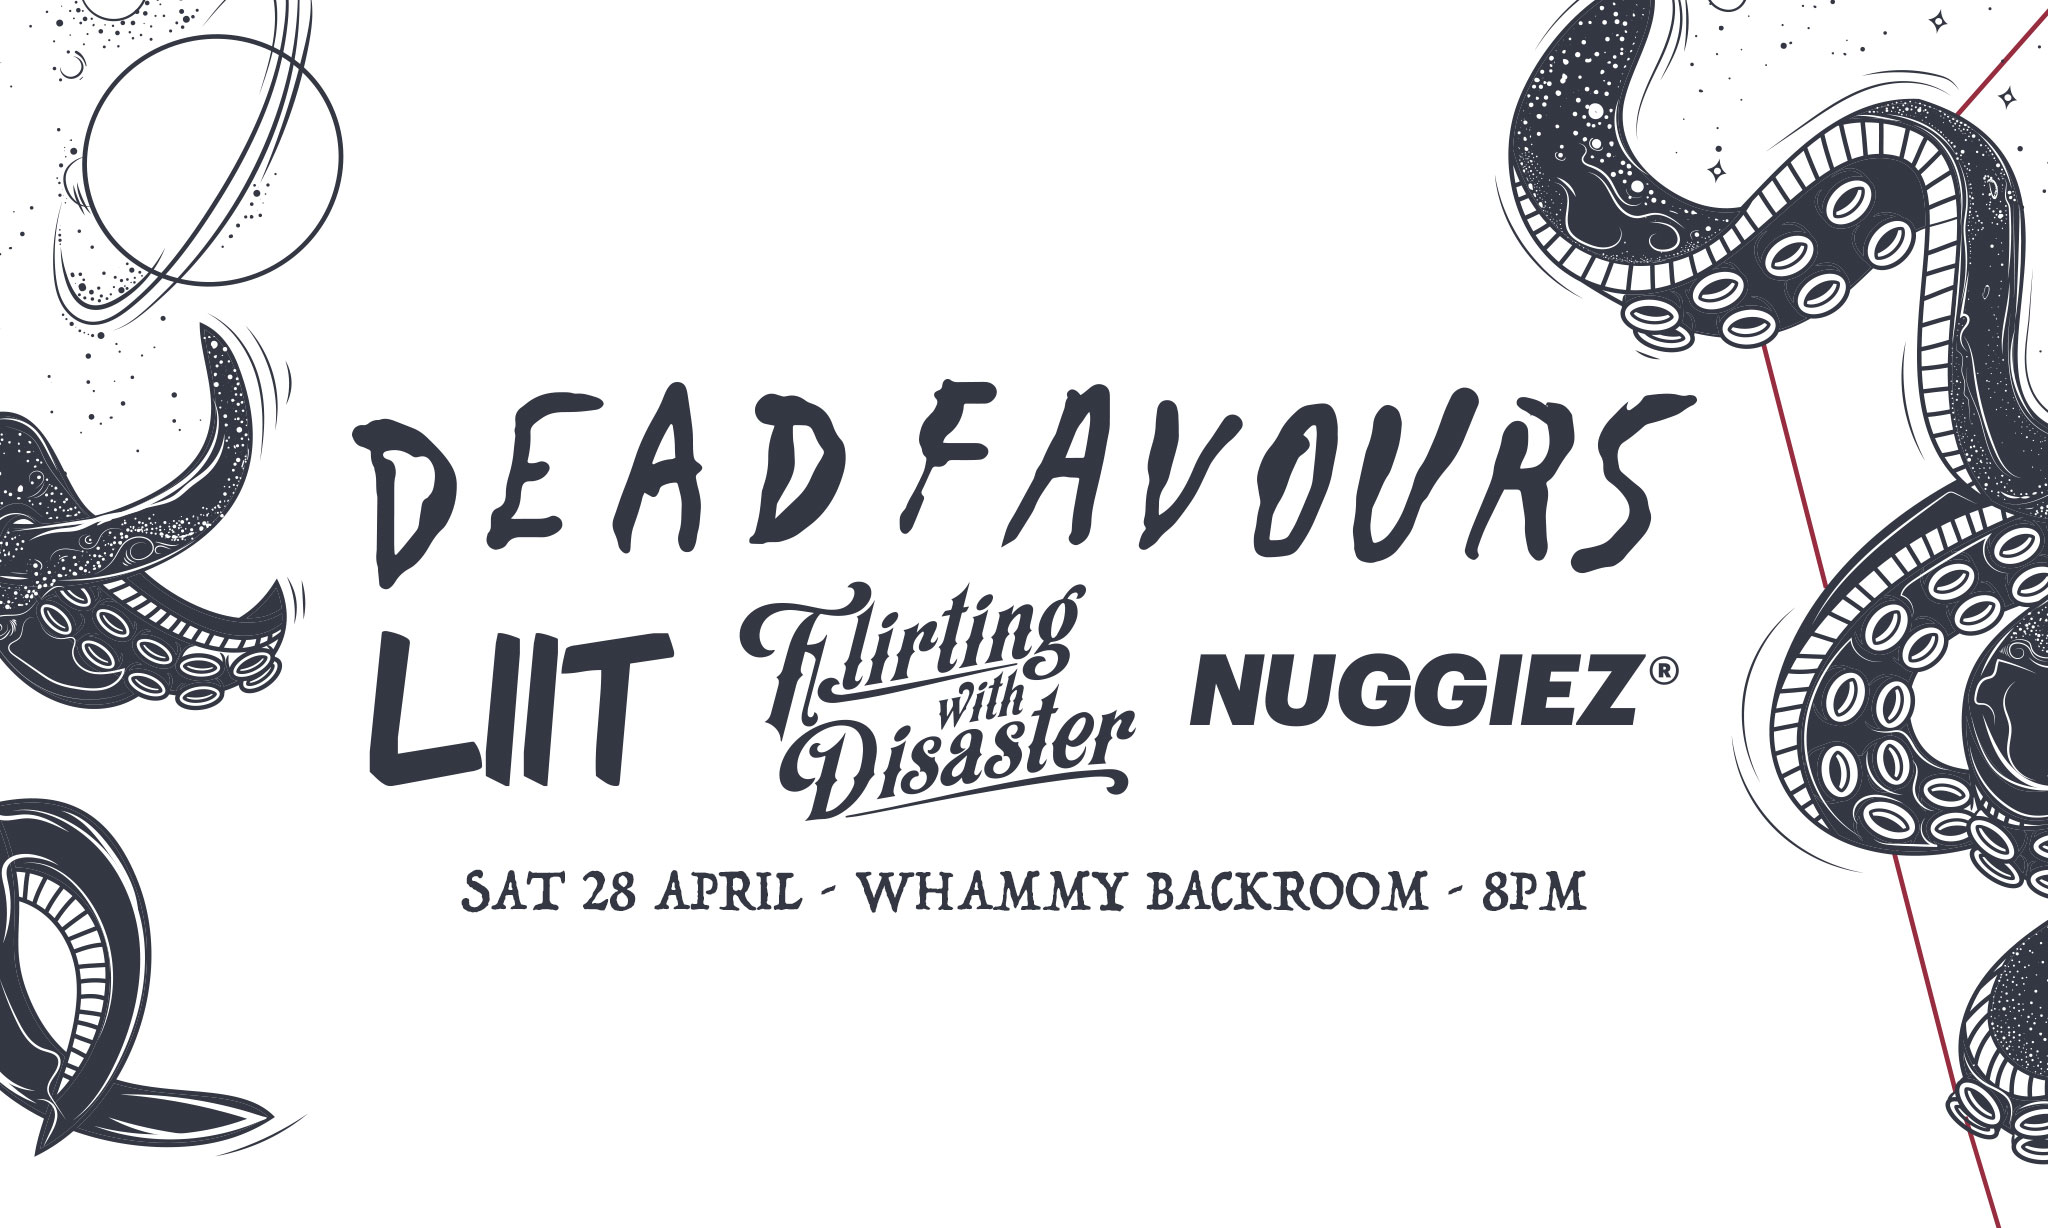 Dead Favours, Liit, Flirting With Disaster, Nuggiez